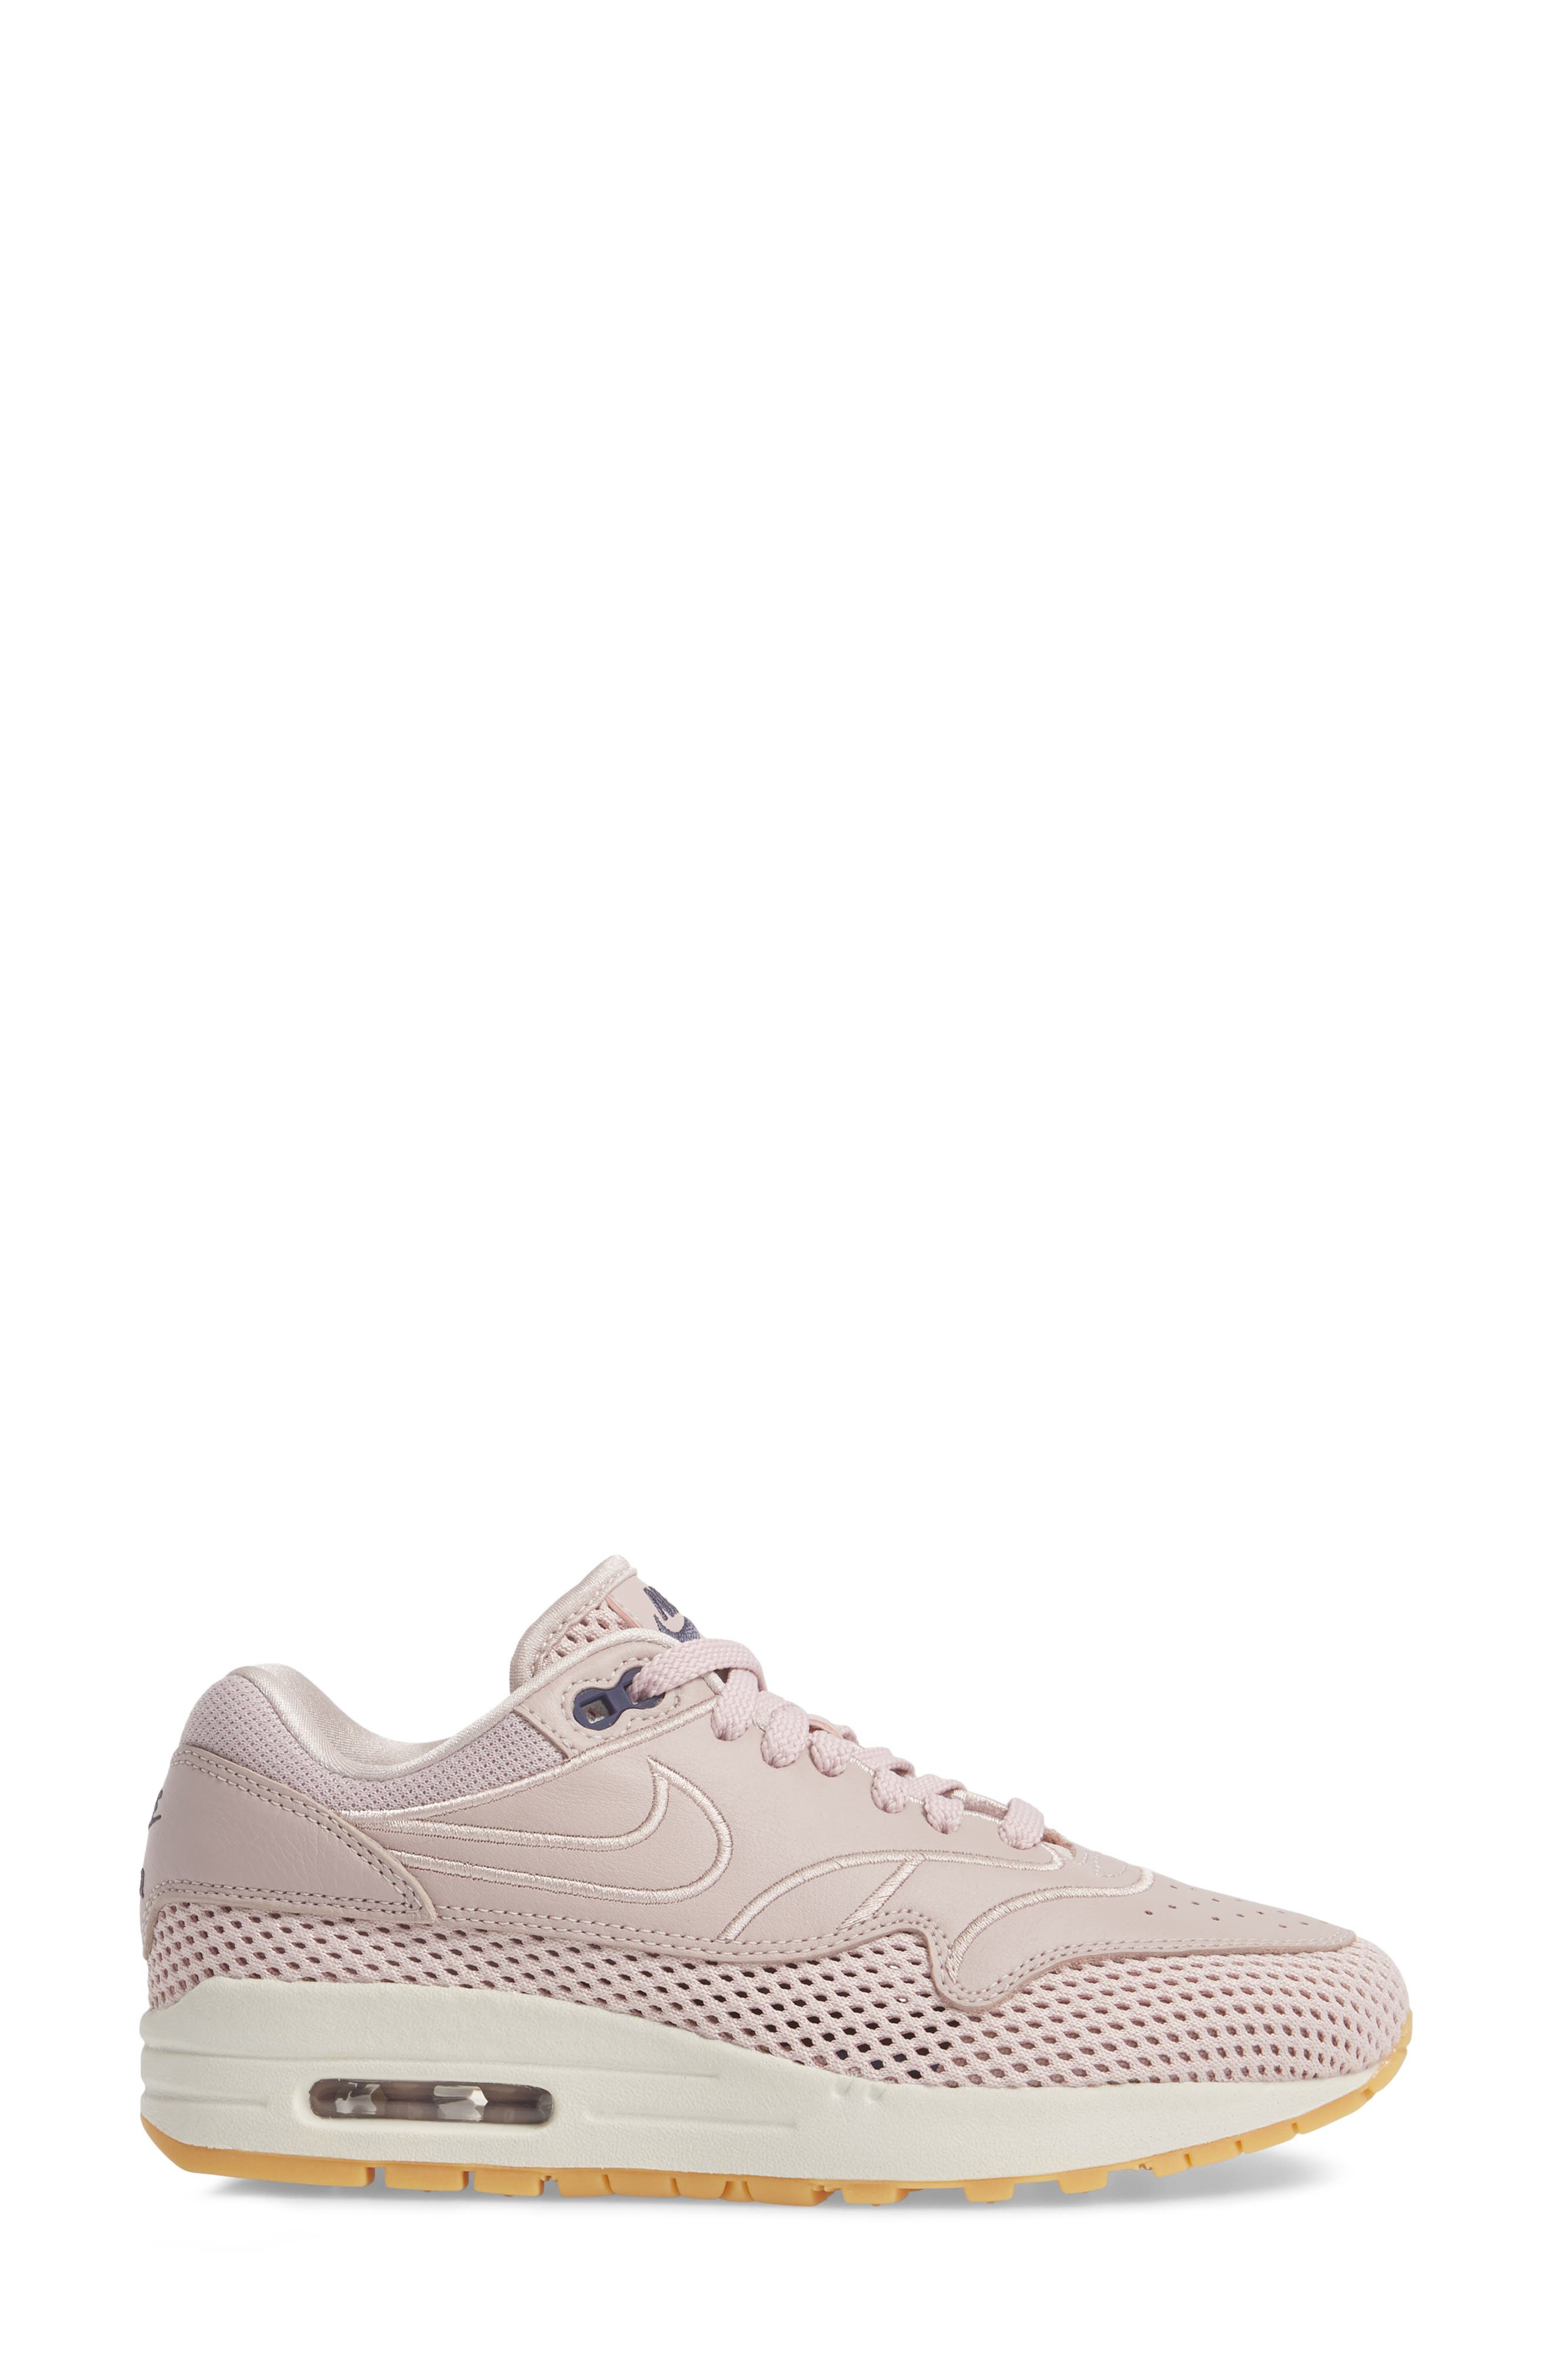 Air Max 1 SI Sneaker,                             Alternate thumbnail 3, color,                             PARTICLE ROSE/ PARTICLE ROSE